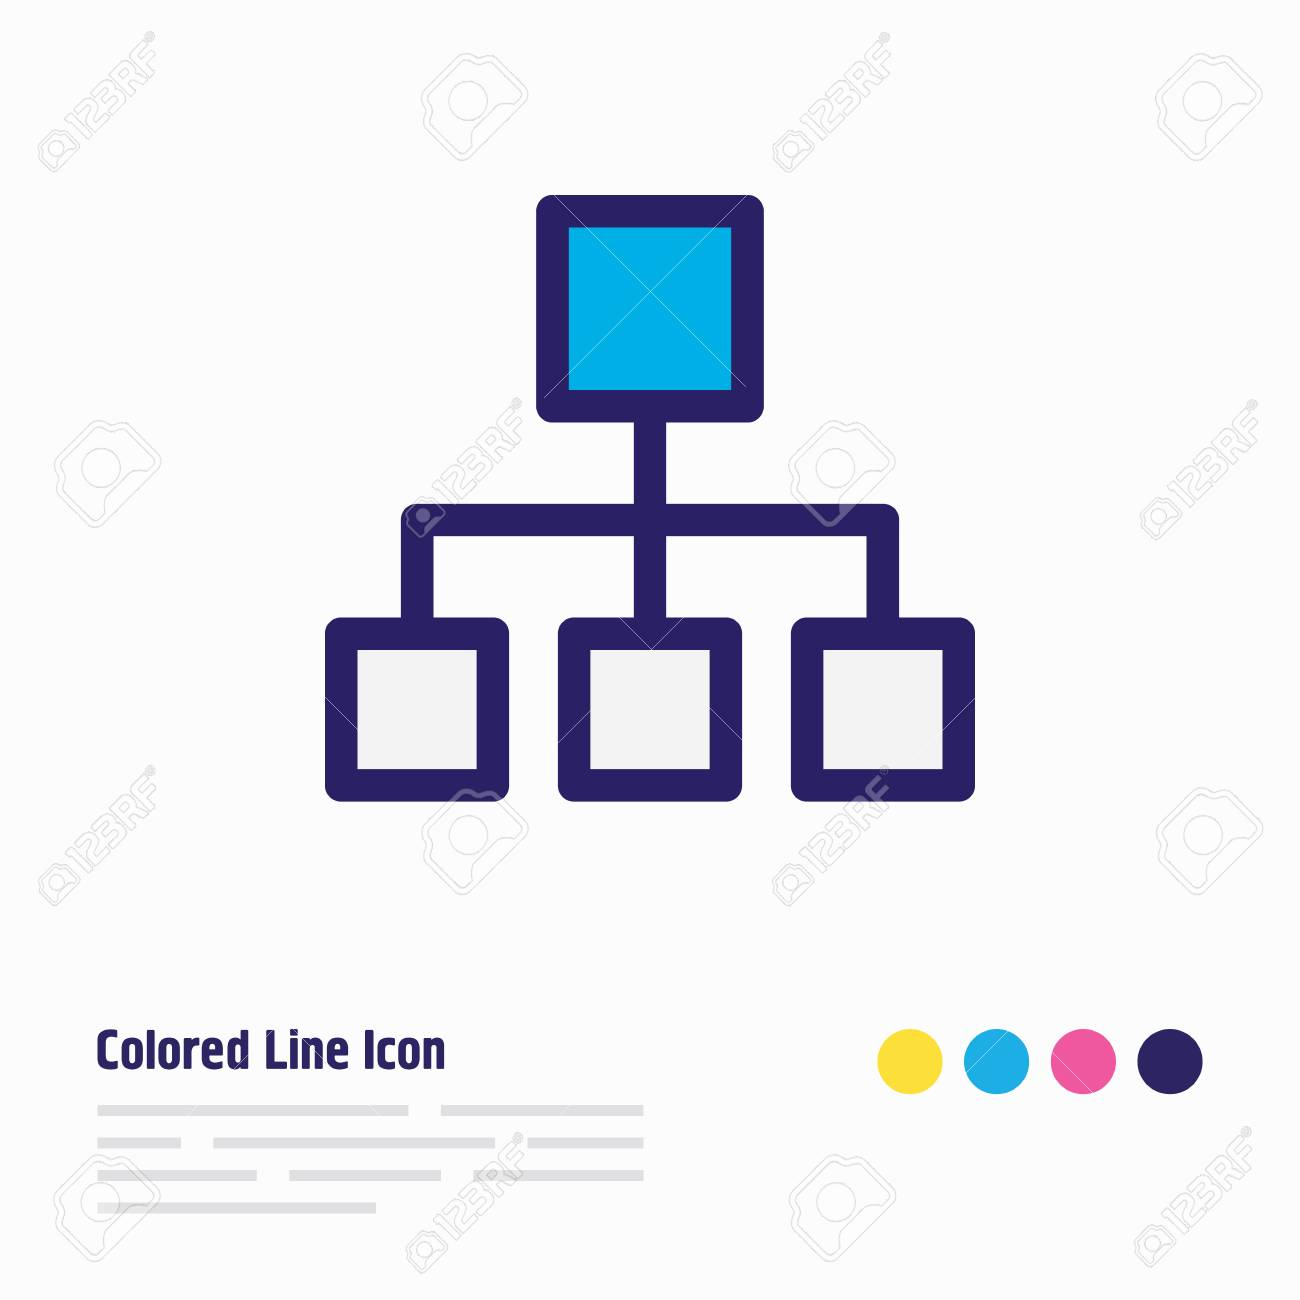 hight resolution of illustration of structure icon colored line beautiful music element also can be used as hierarchy